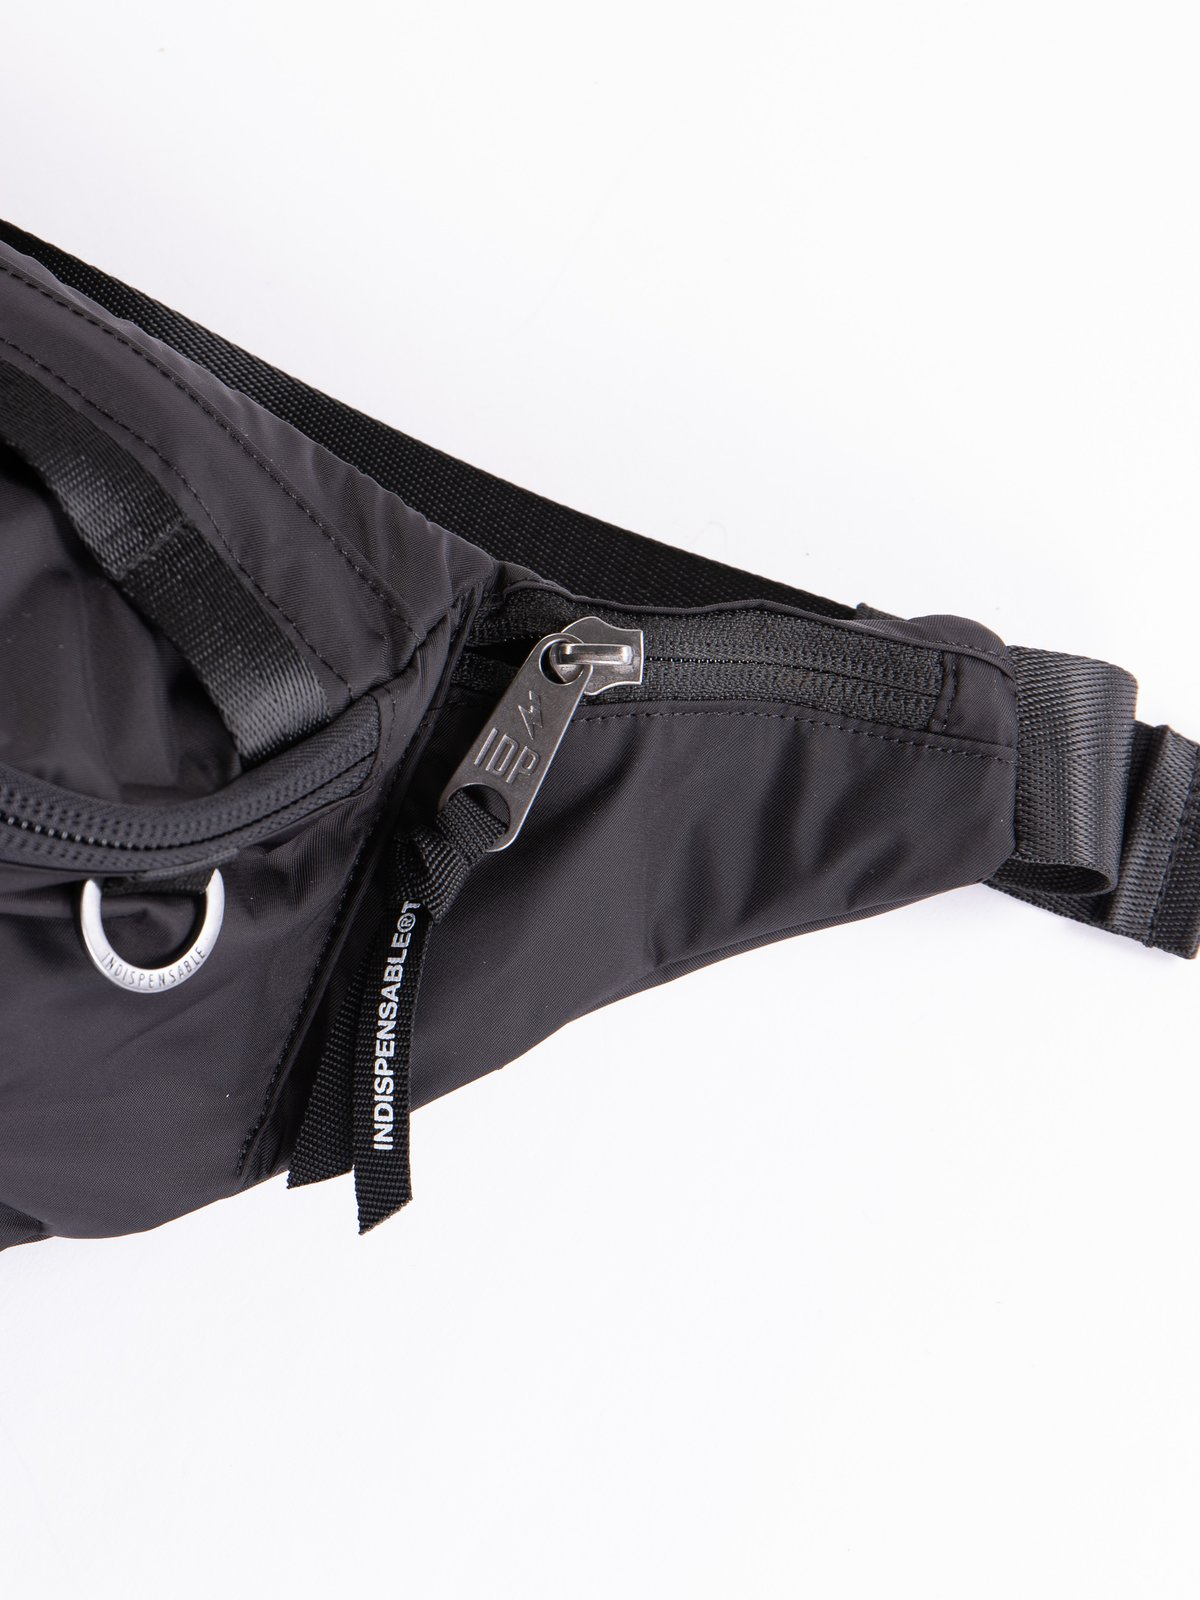 Black Econyl Attach IDP Belt Bag - Image 3